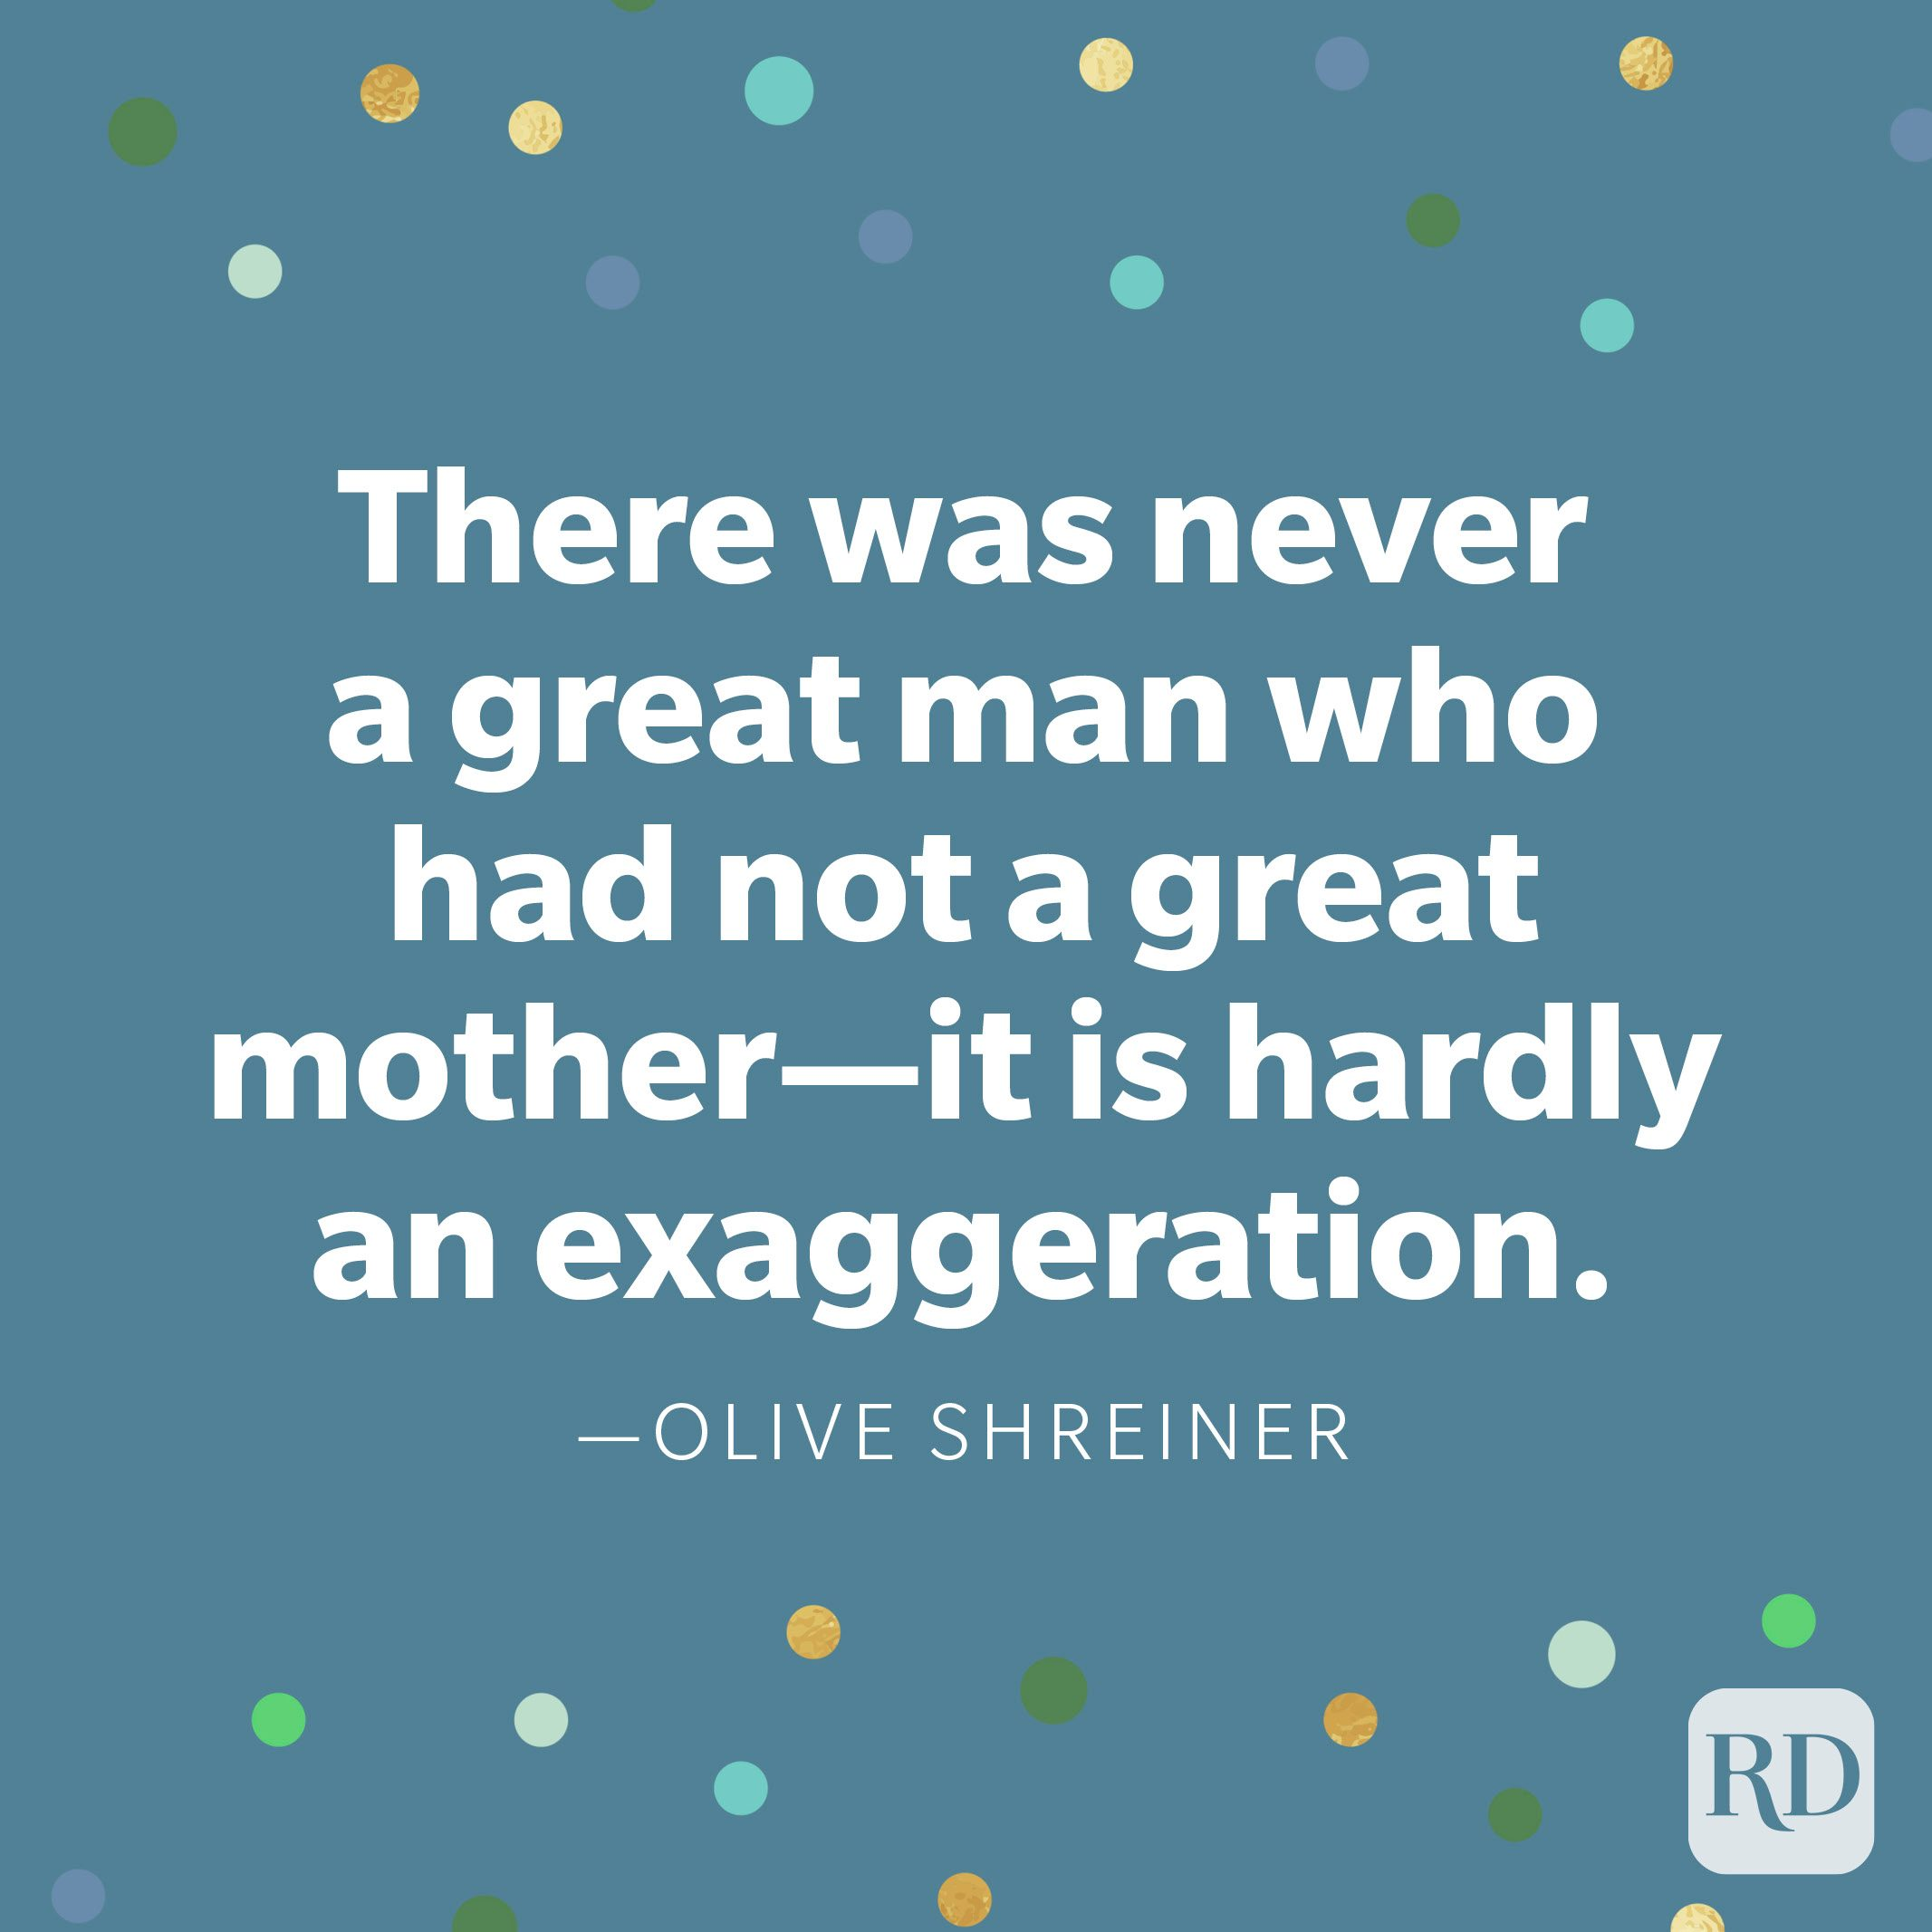 """There was never a great man who had not a great mother—it is hardly an exaggeration."" —Olive Shreiner"